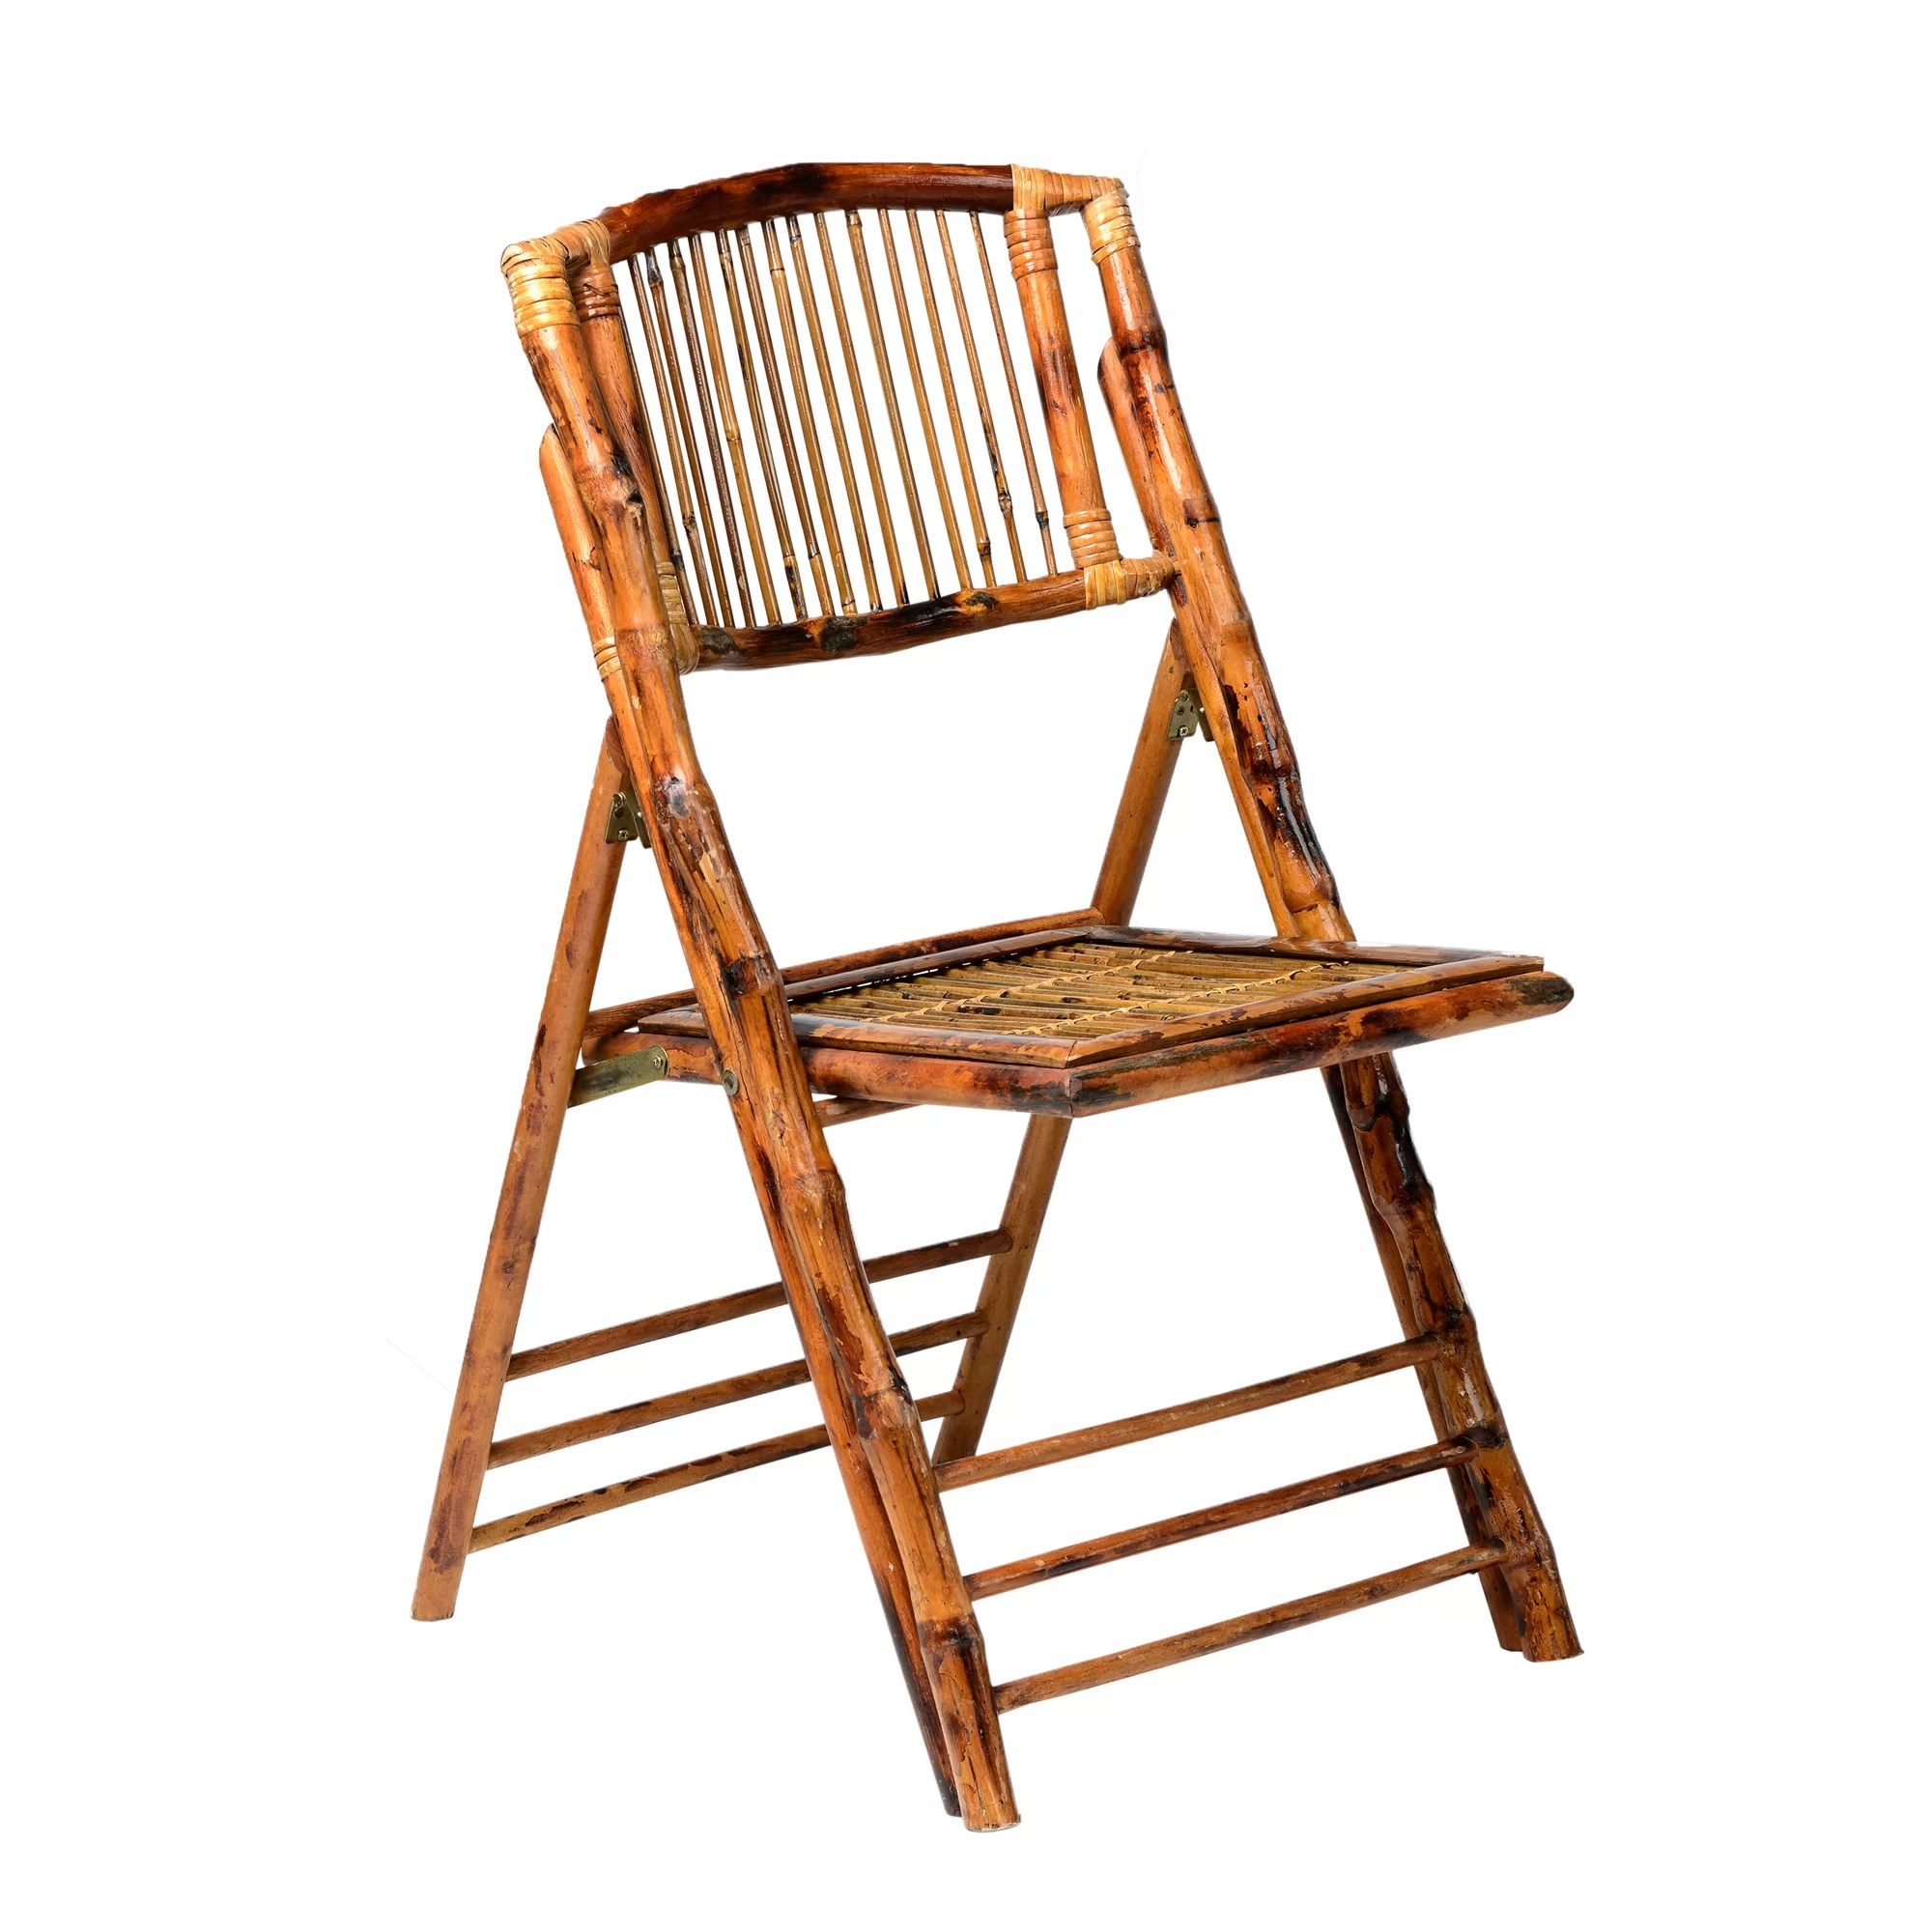 commercial seating chairs gaming chair rocker products bamboo folding and reviews